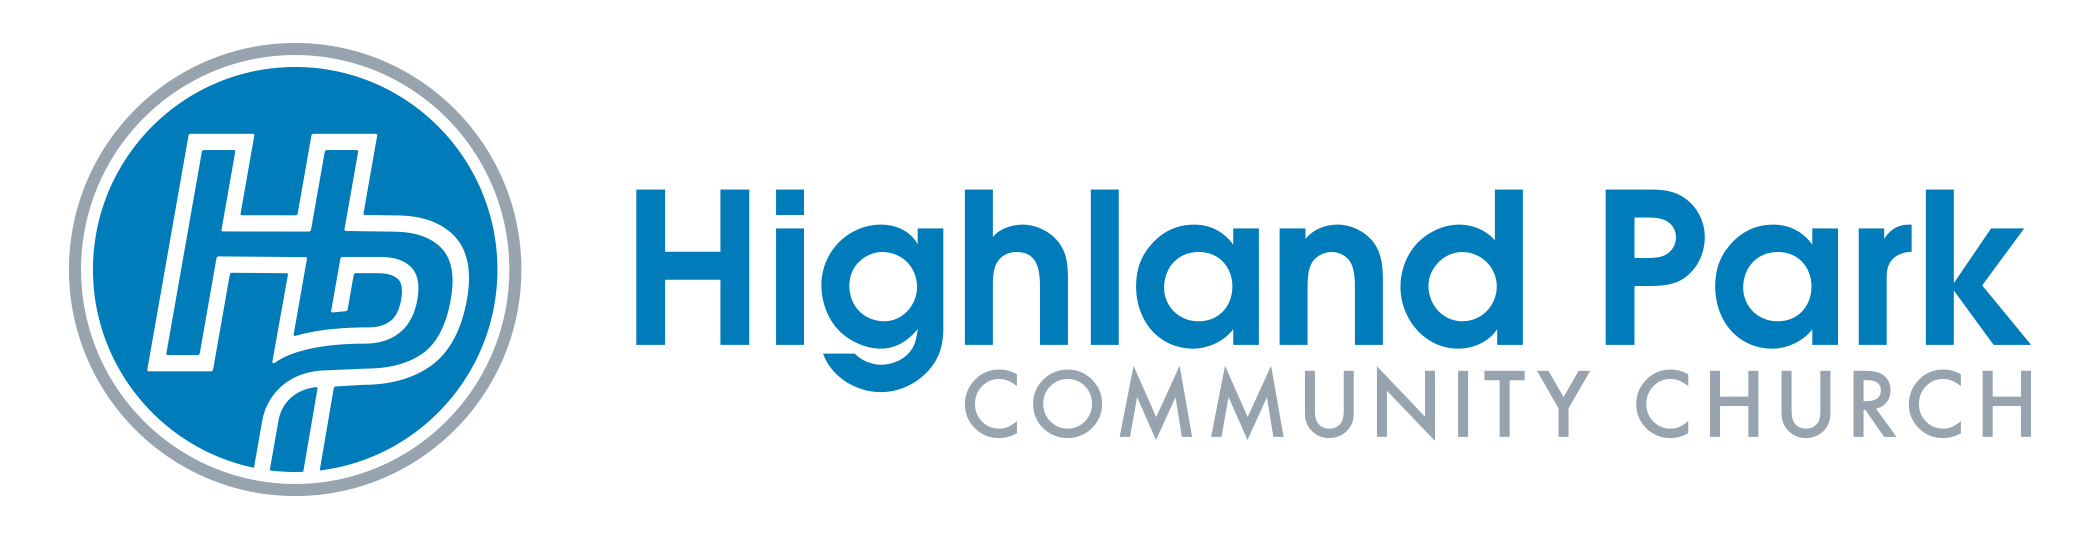 Highland Park Community Church